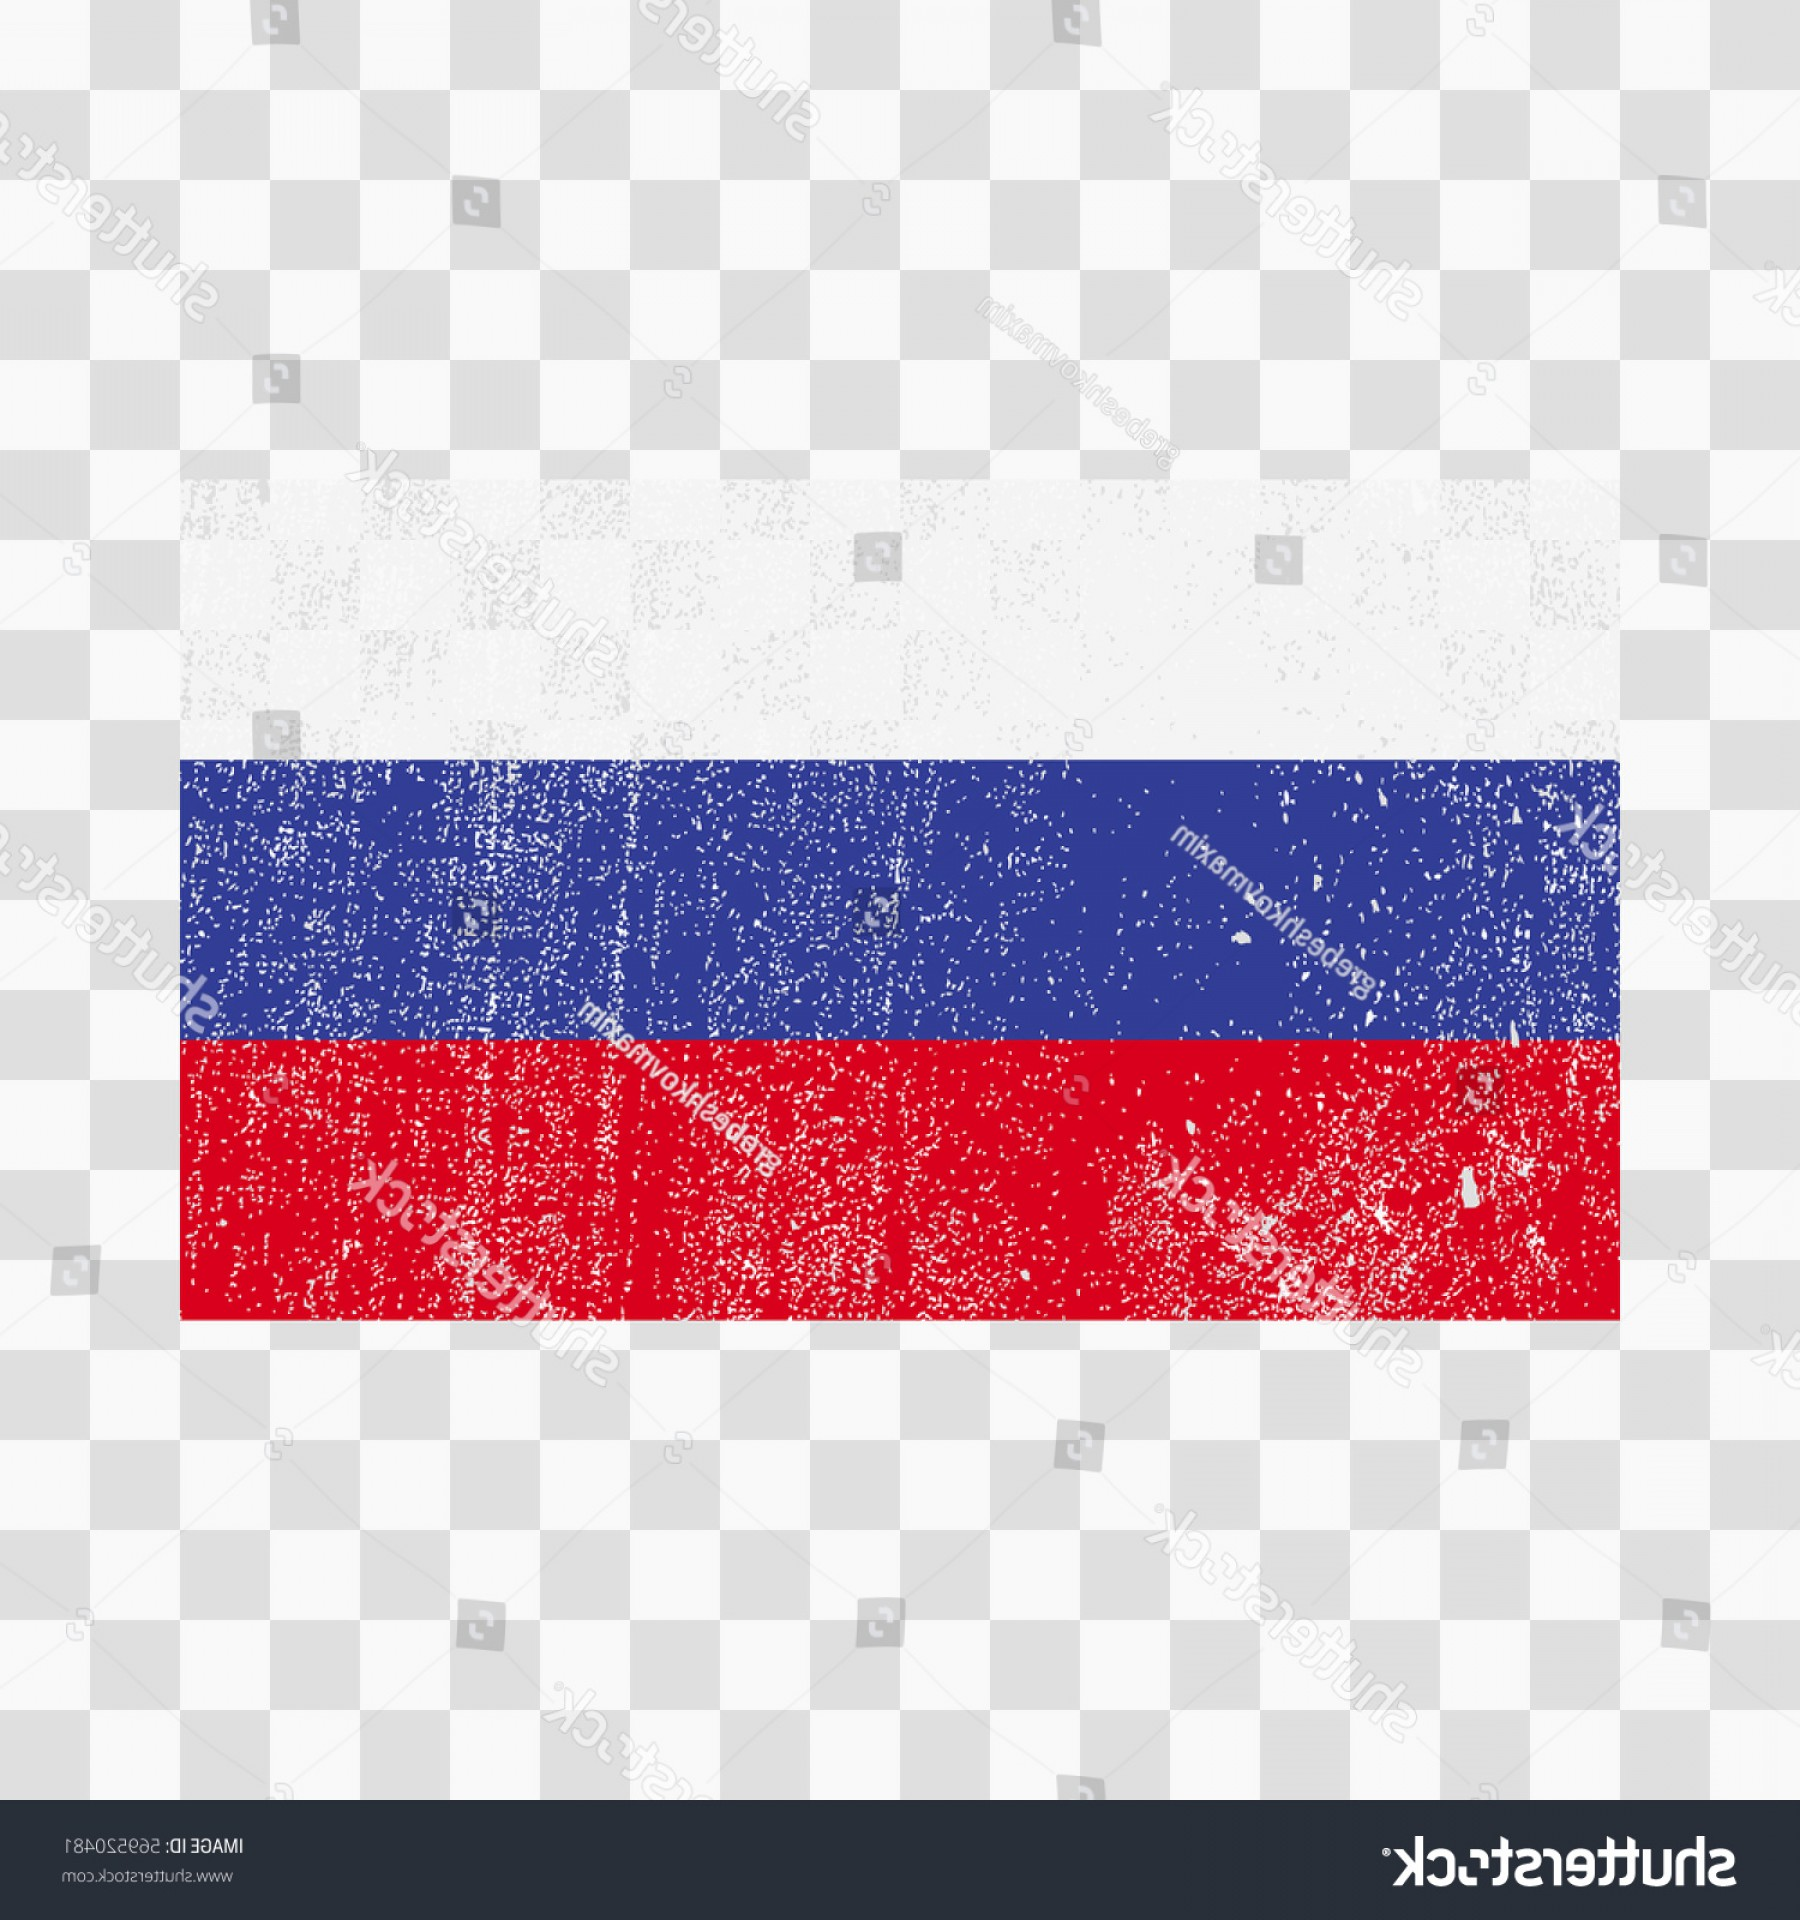 Distressed Flag Vector Digital: Grunge Russia Flag Russian Distress Texturevector